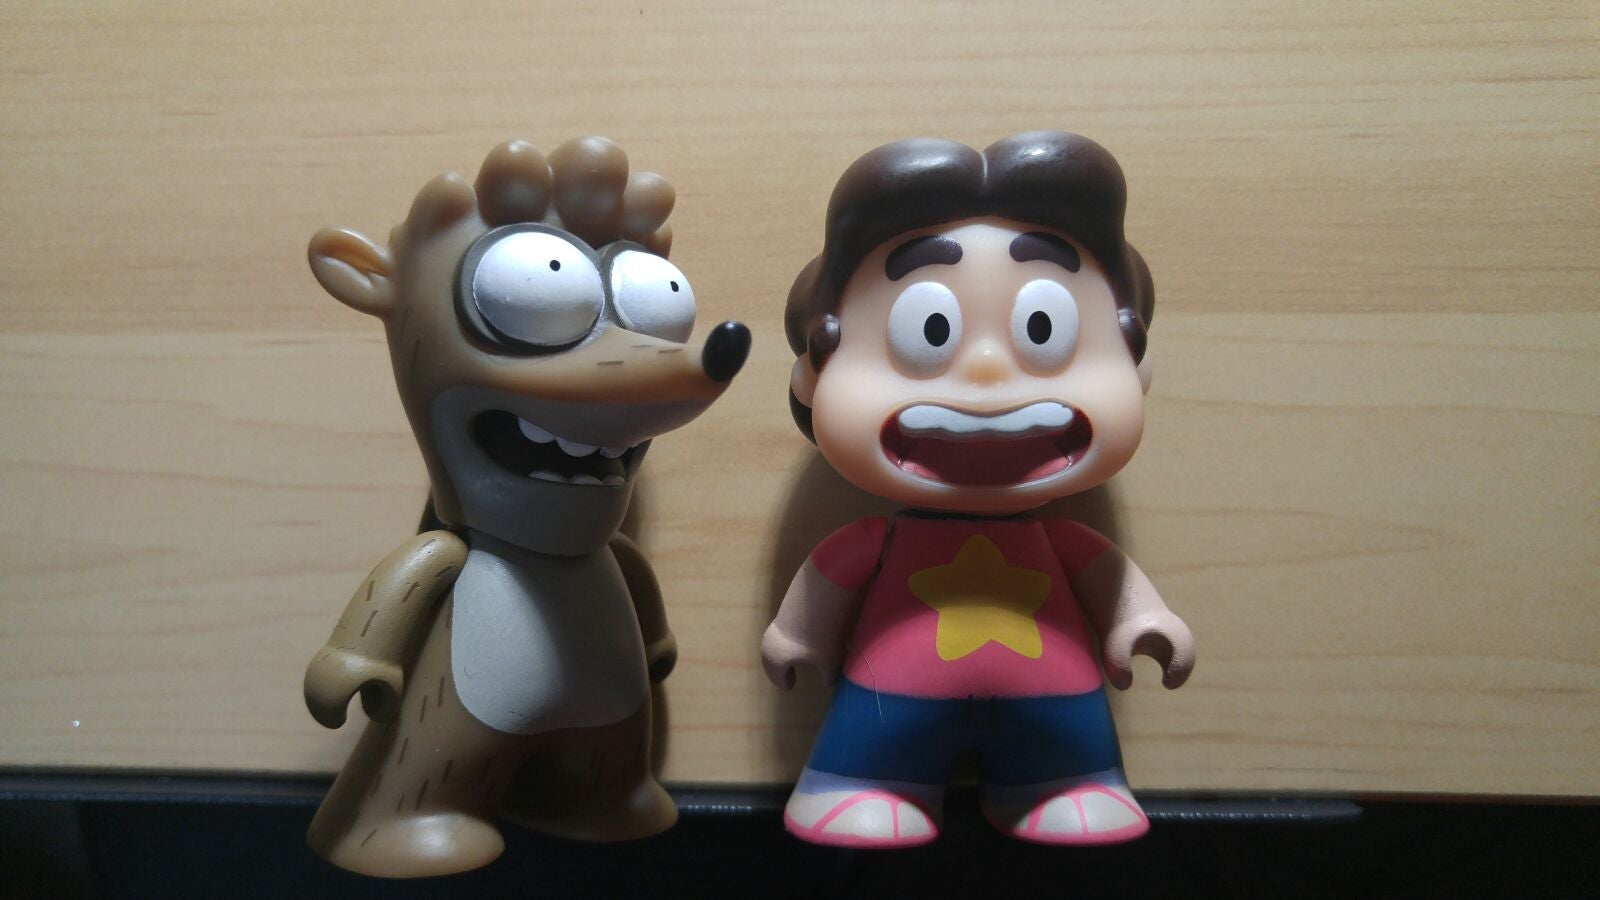 Steven Universe and Rigby Titans figures